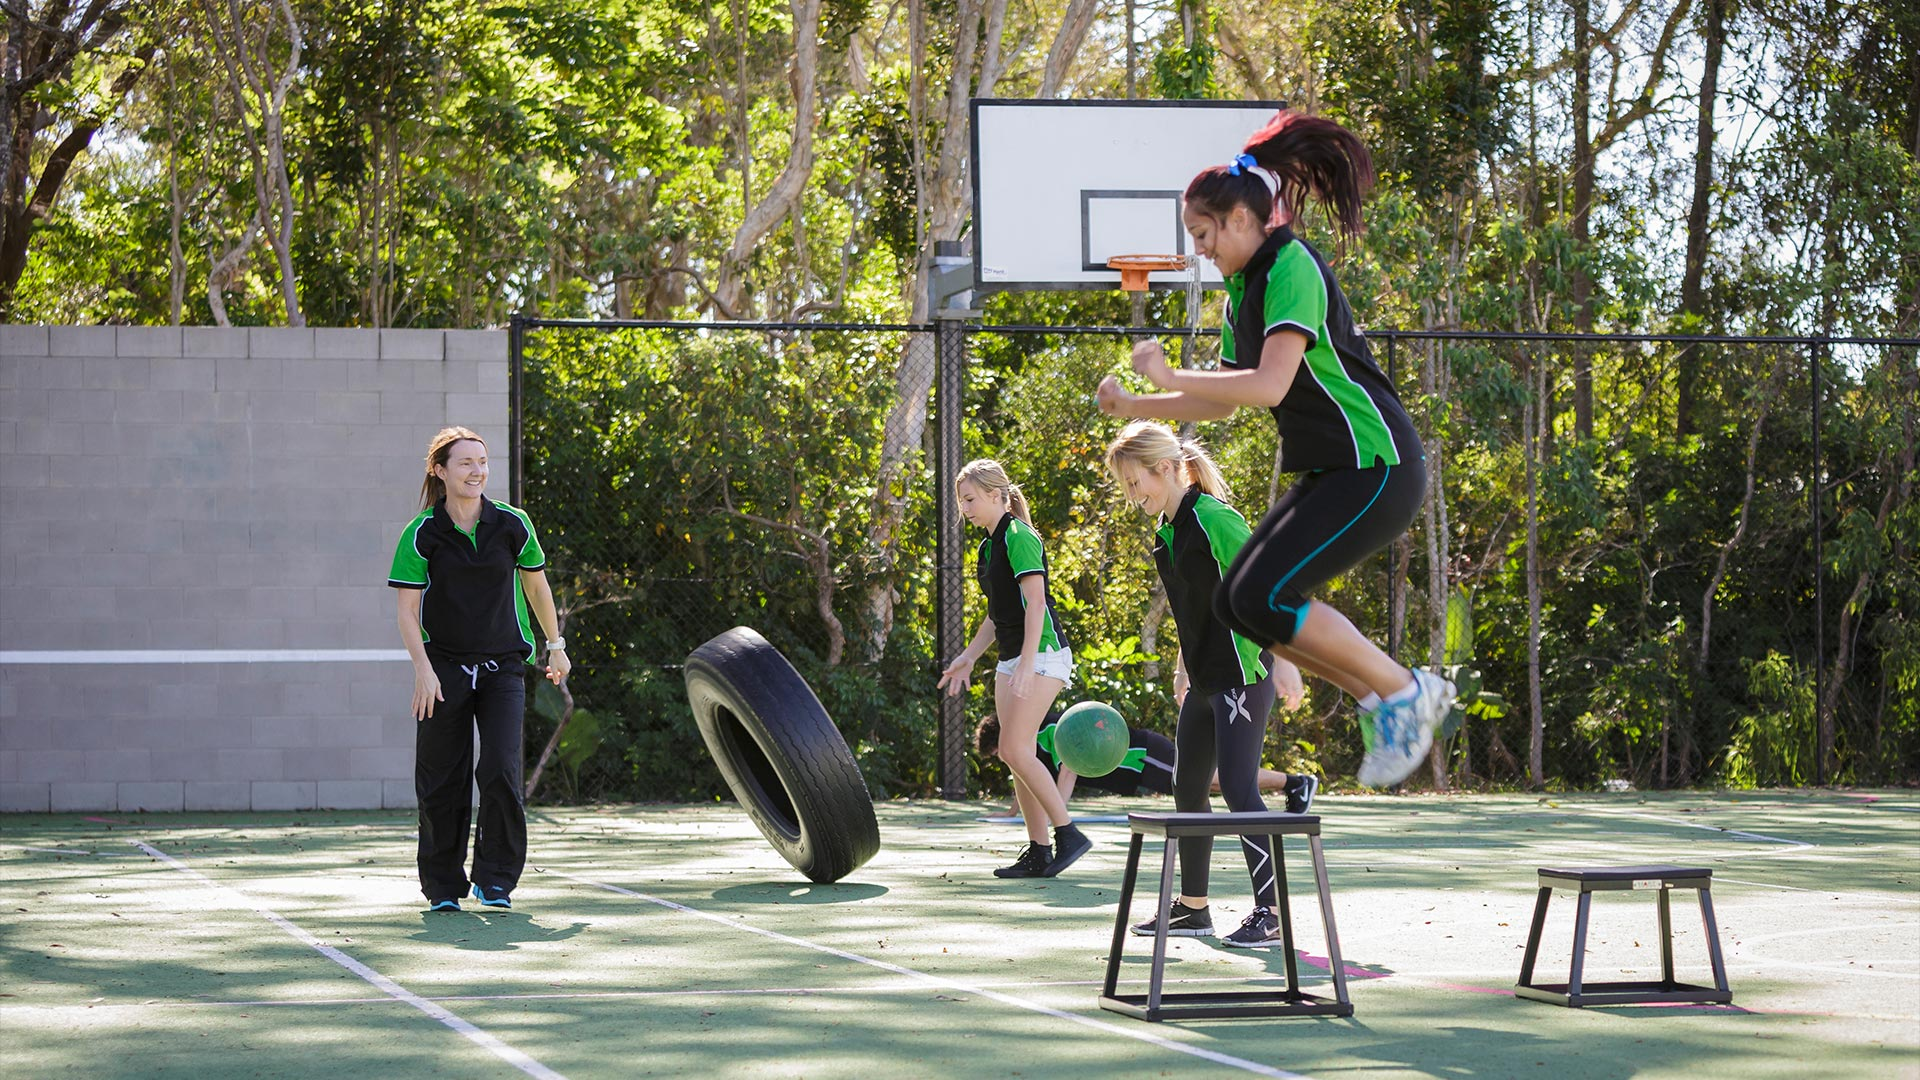 caboolture-facilities-gyms-and-sports-facilities-01.jpg